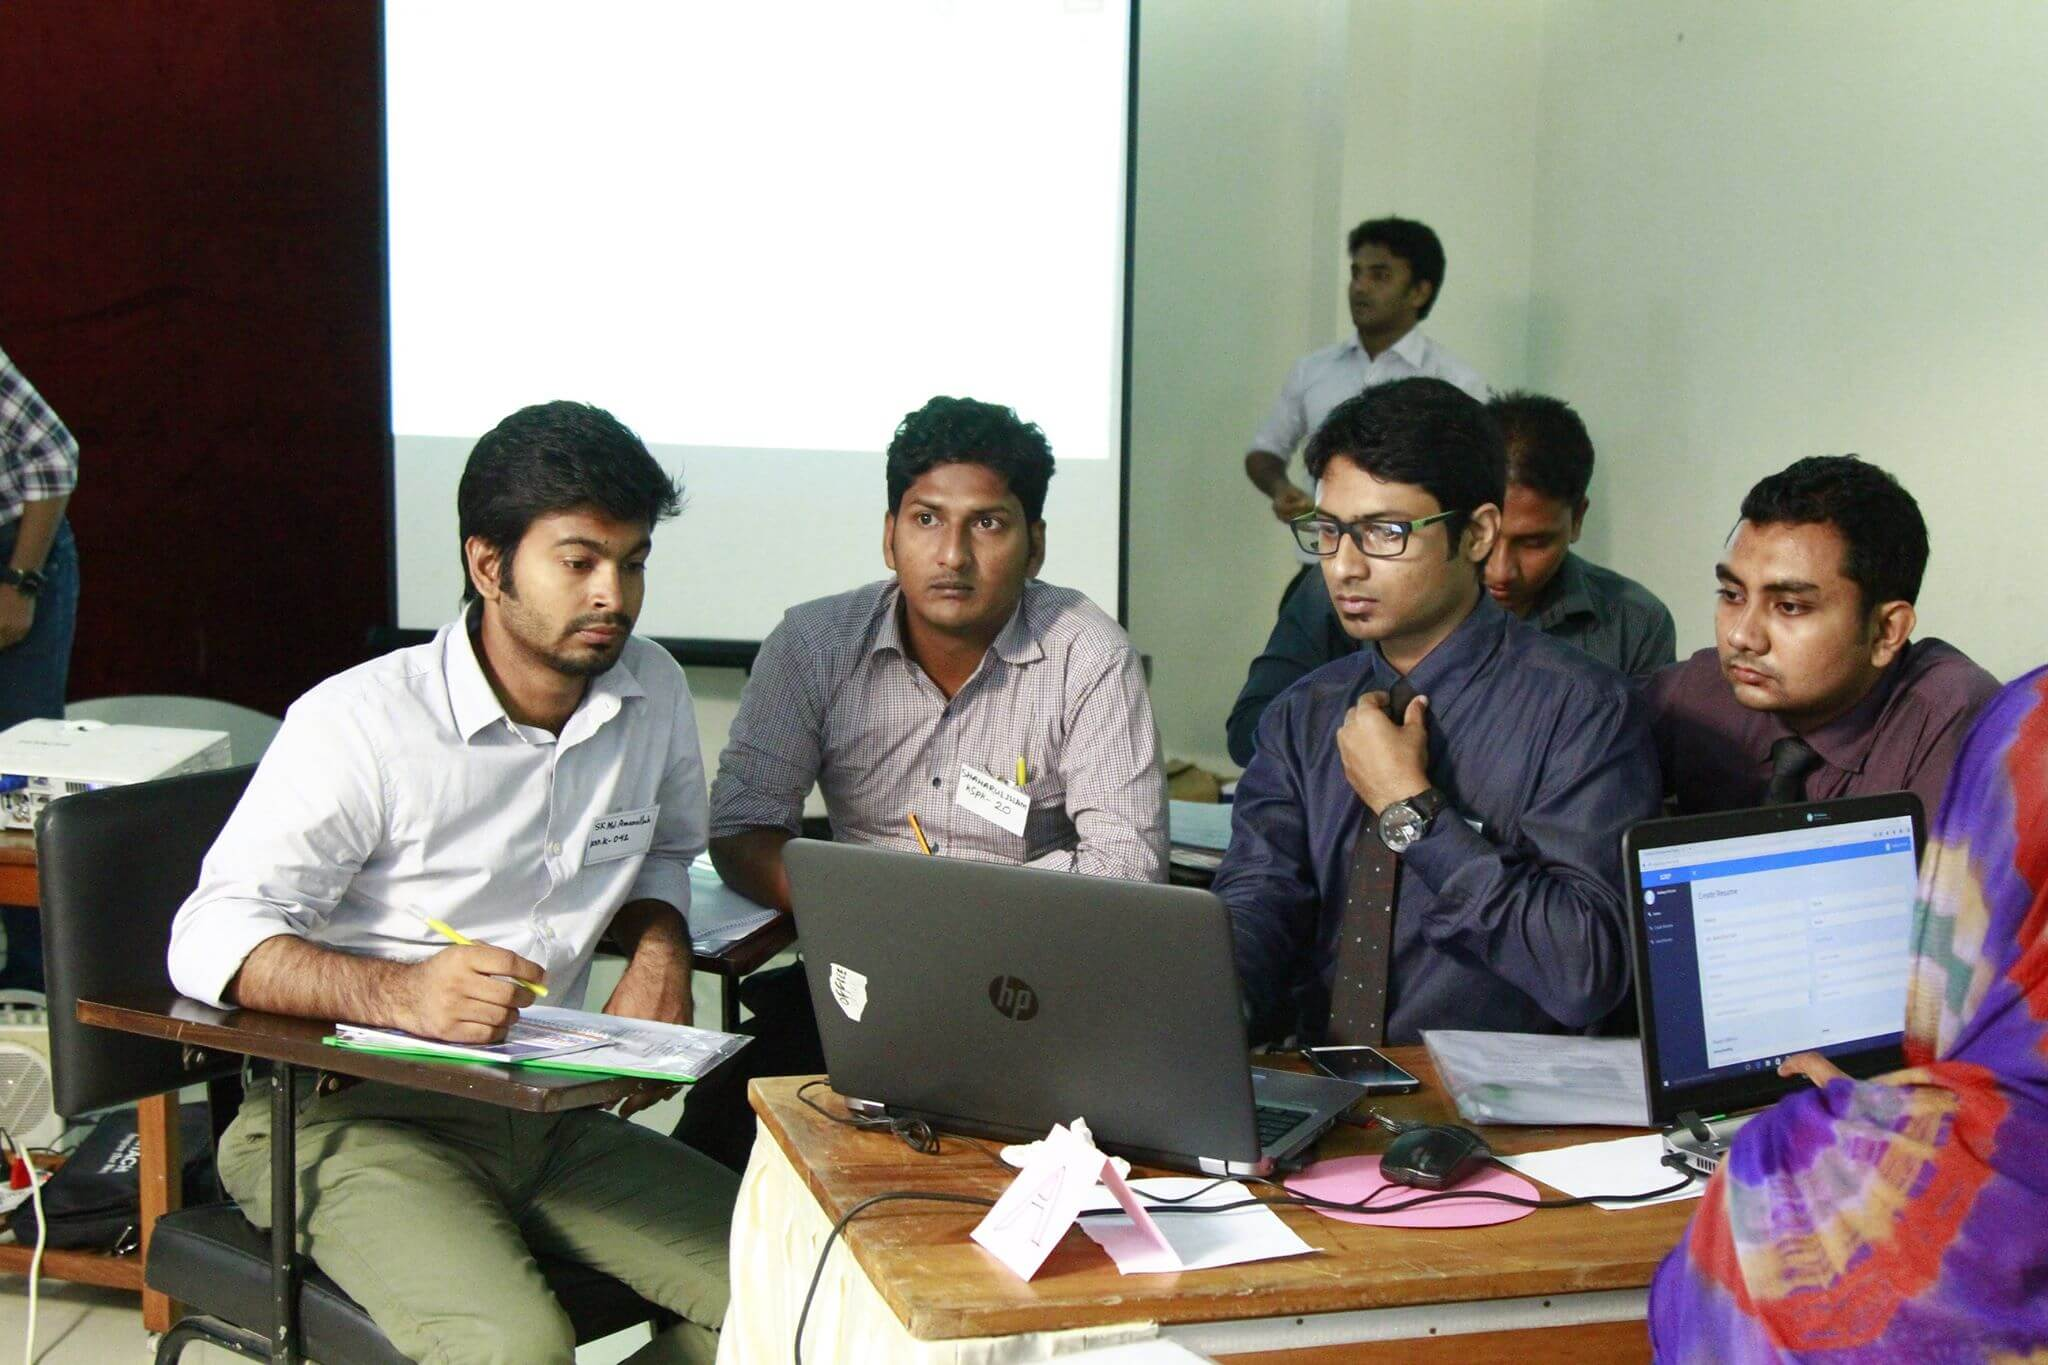 30 young bangla members received internship and job at aamra this career camp is mainly aimed to provide some necessary skills to the fresh graduates and entrants to be a competent candidate for the job market